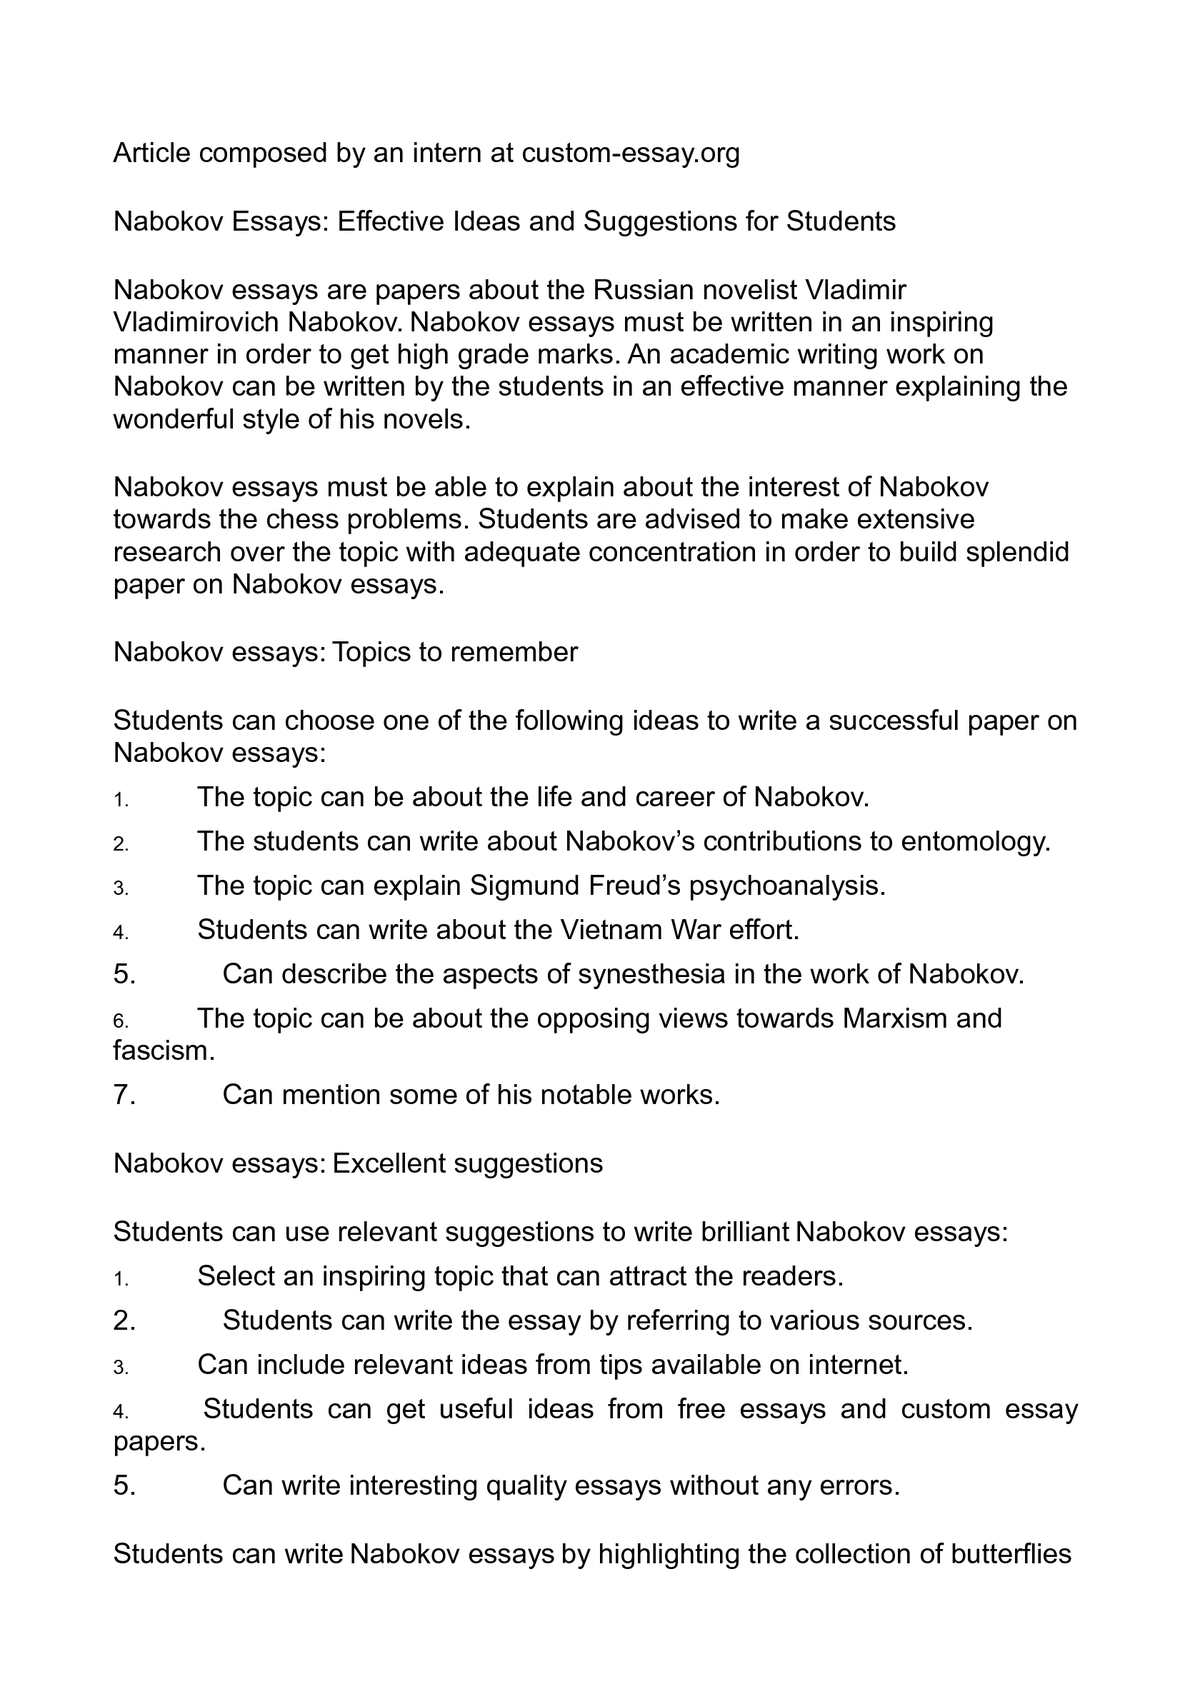 Calaméo - Nabokov Essays: Effective Ideas and Suggestions for Students